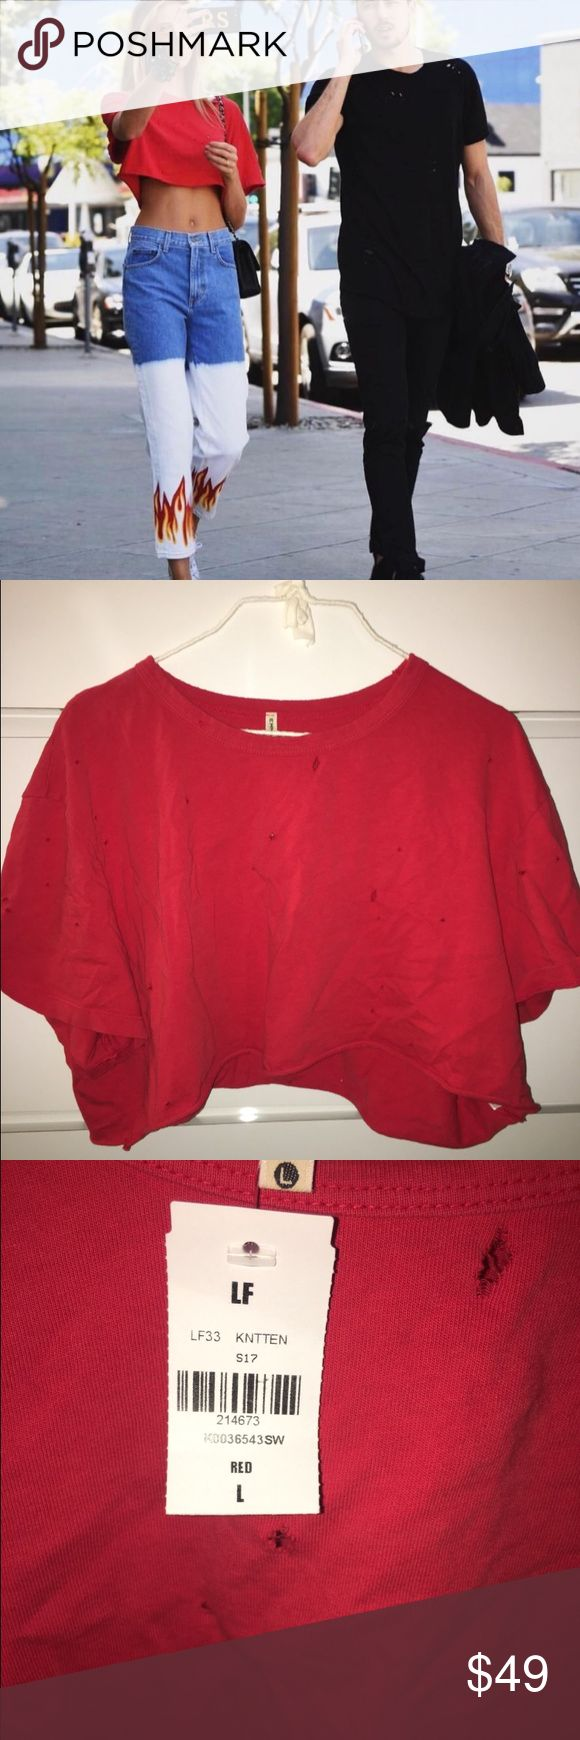 LF red distressed crop top brand new (Worn by Romee in the picture) this top is sold by LF but cannot be purchased online. It is brand new with tags still attached. Says size large on the tag but can be worn as oversized for anyone size S-M. LF Tops Tees - Short Sleeve